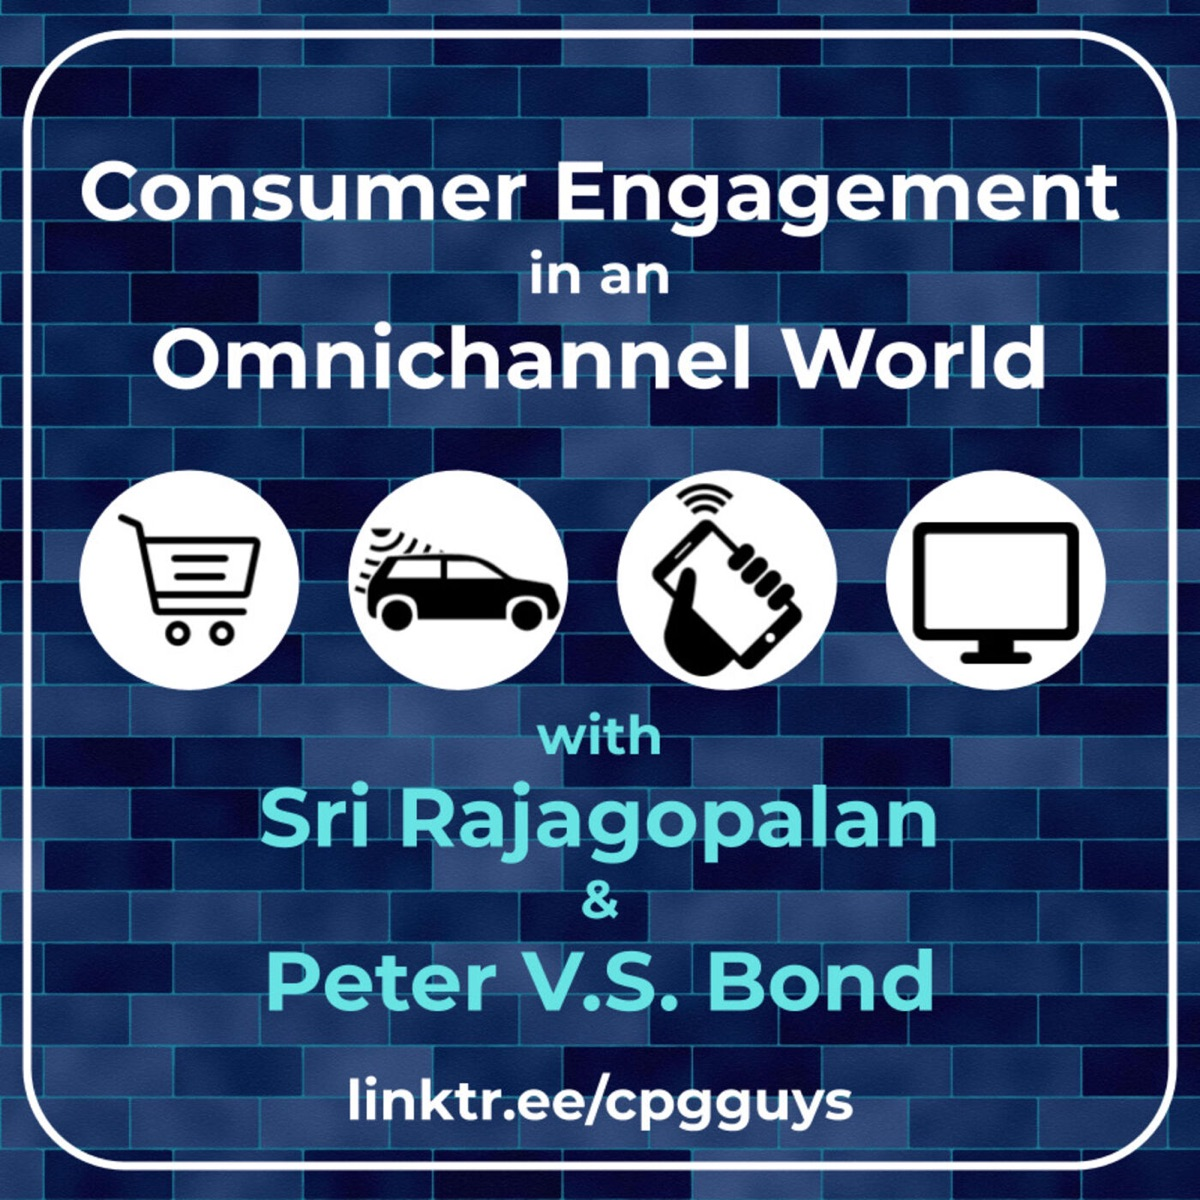 Consumer Engagement in an Omnichannel World